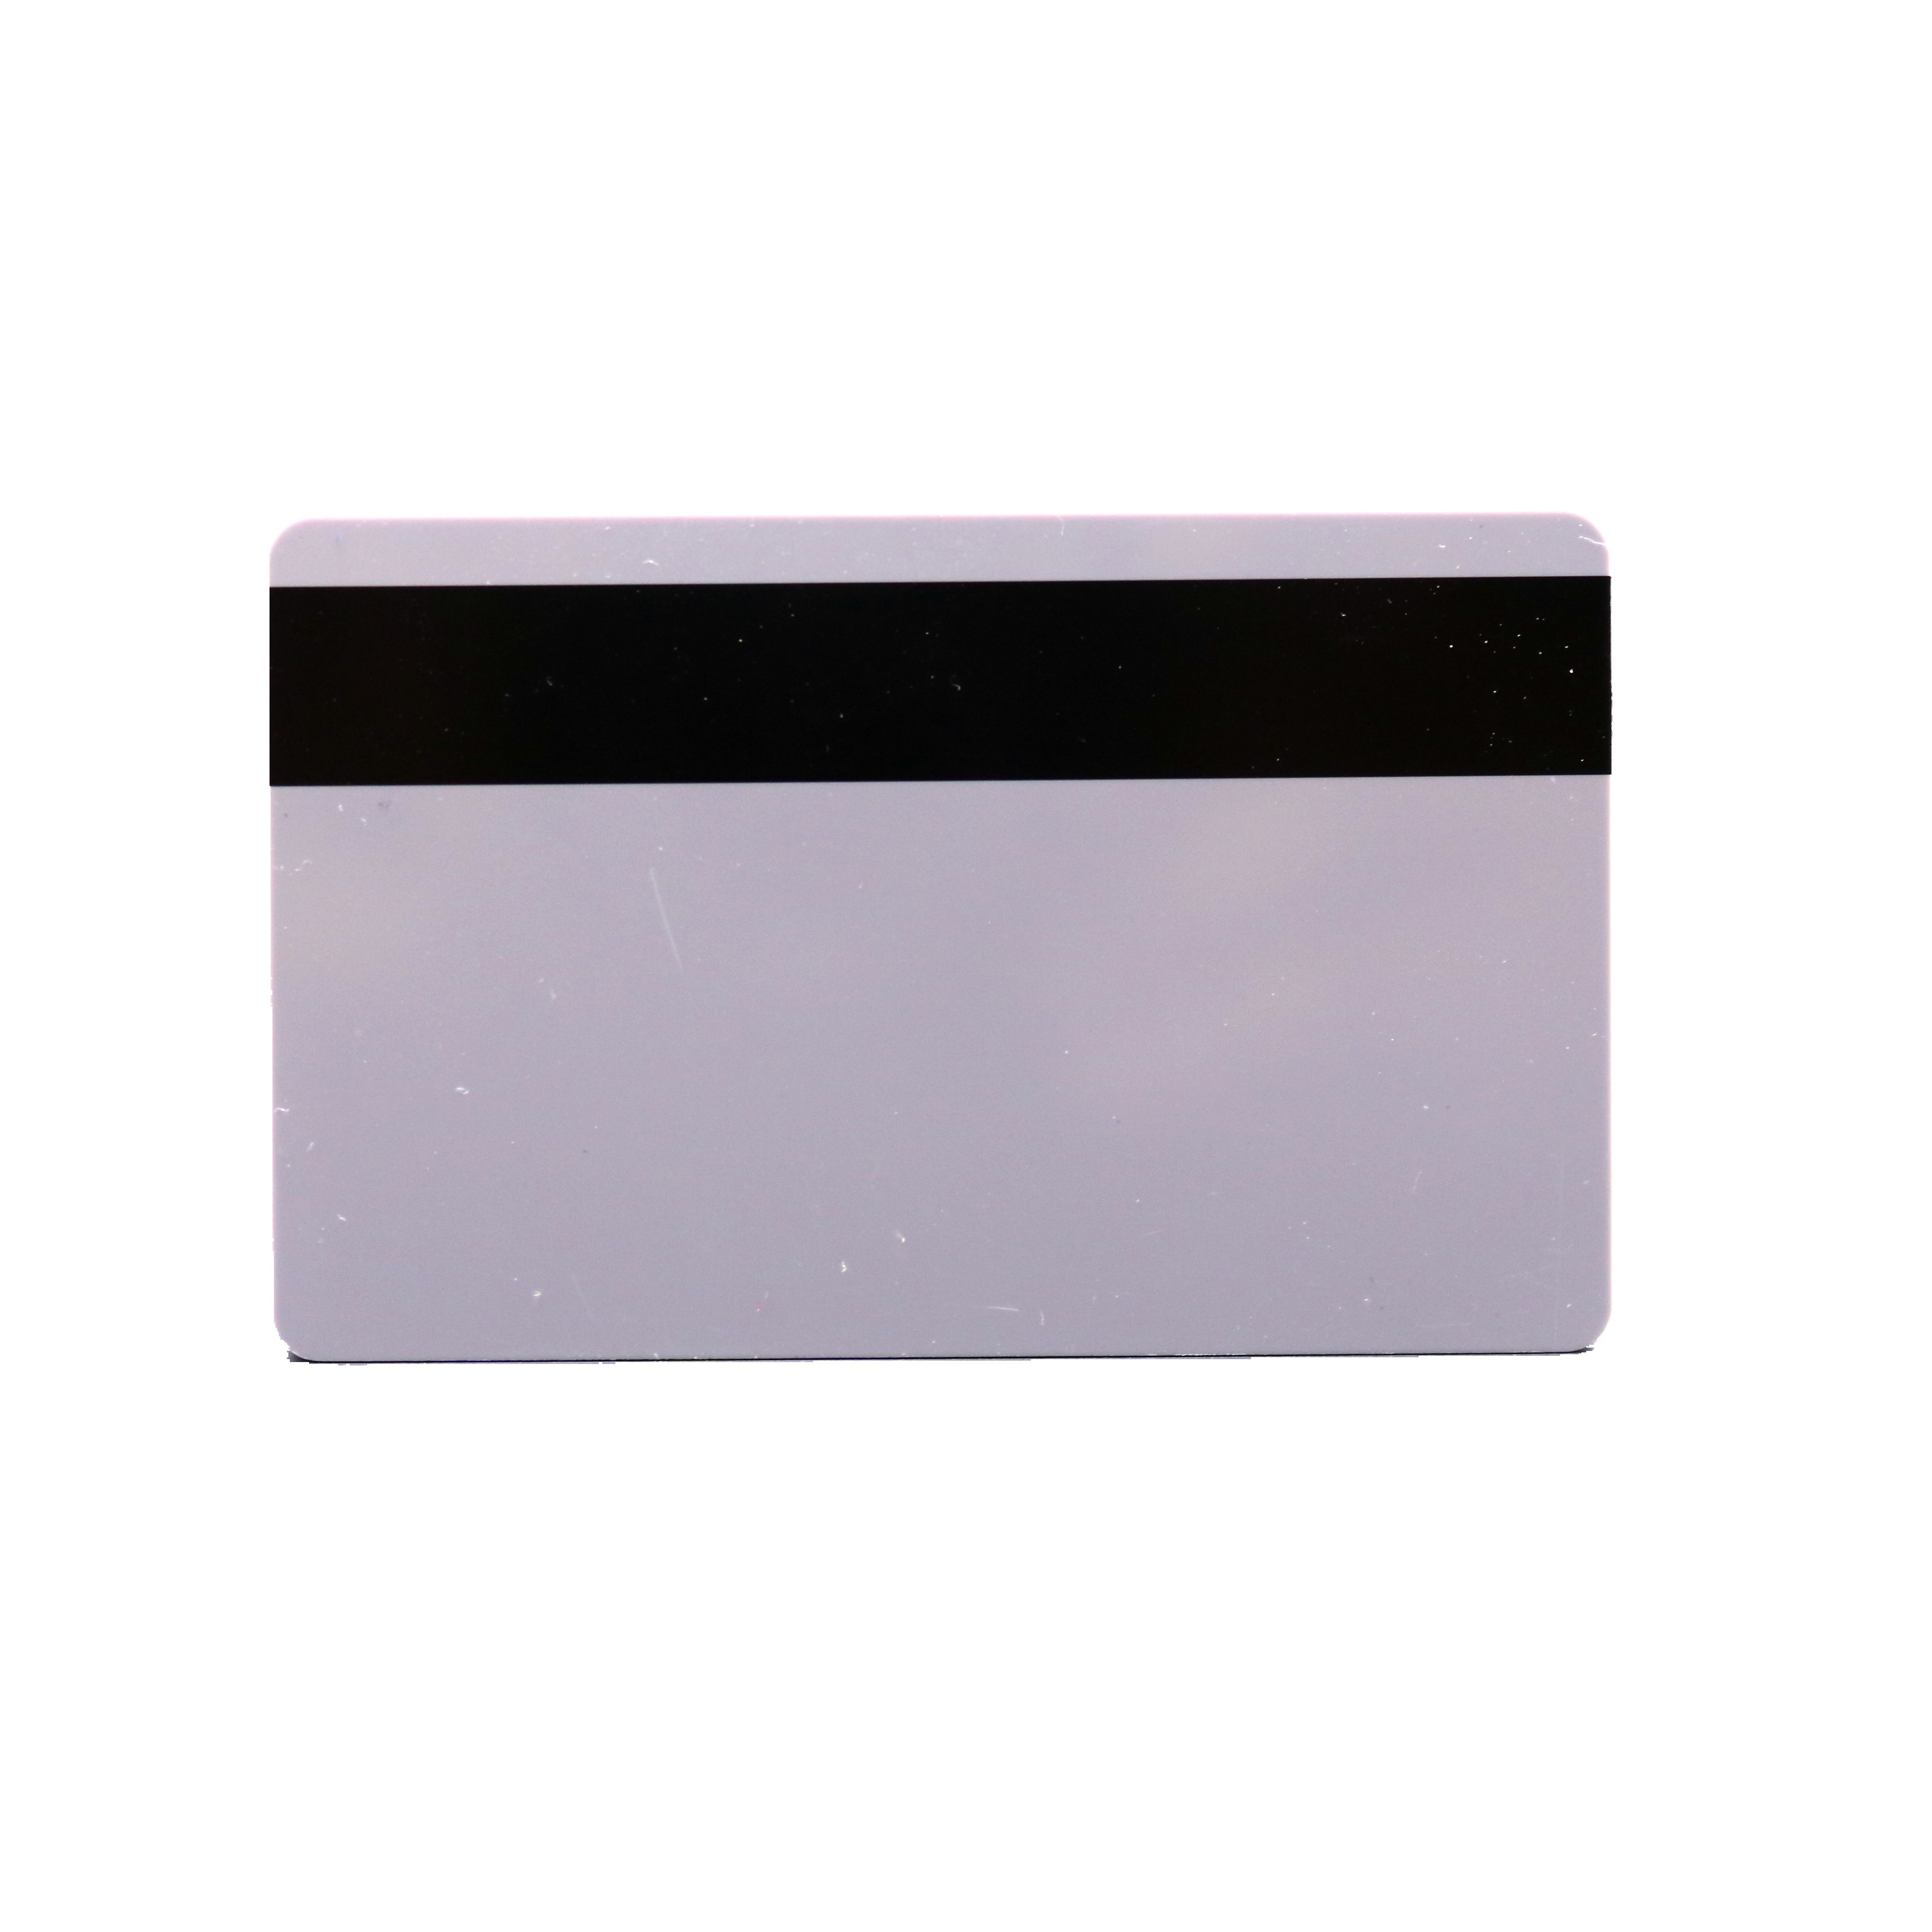 Blank Cr80 ISO PCV 300 OE Low Resistant LoCo HiCo magnetic stripe card жидкость loco french cake 60мл 0мг